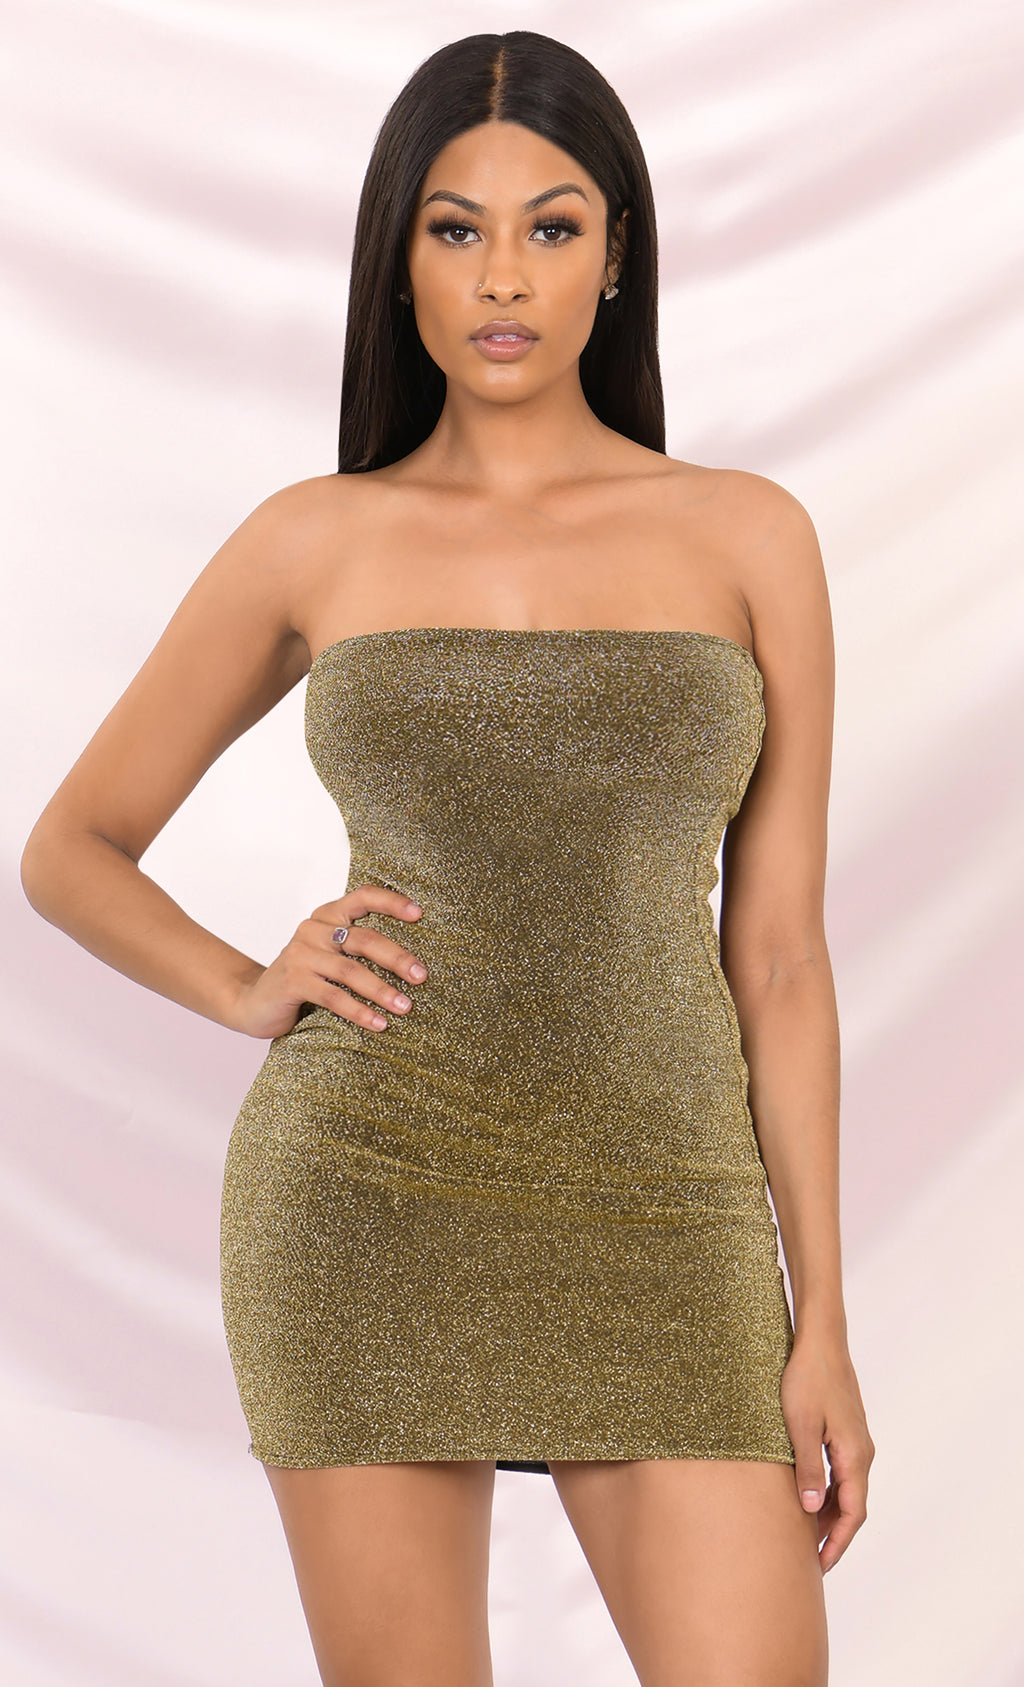 Made You Stare Lurex Glitter Tube Stretchy Strapless Mini Bodycon Dress